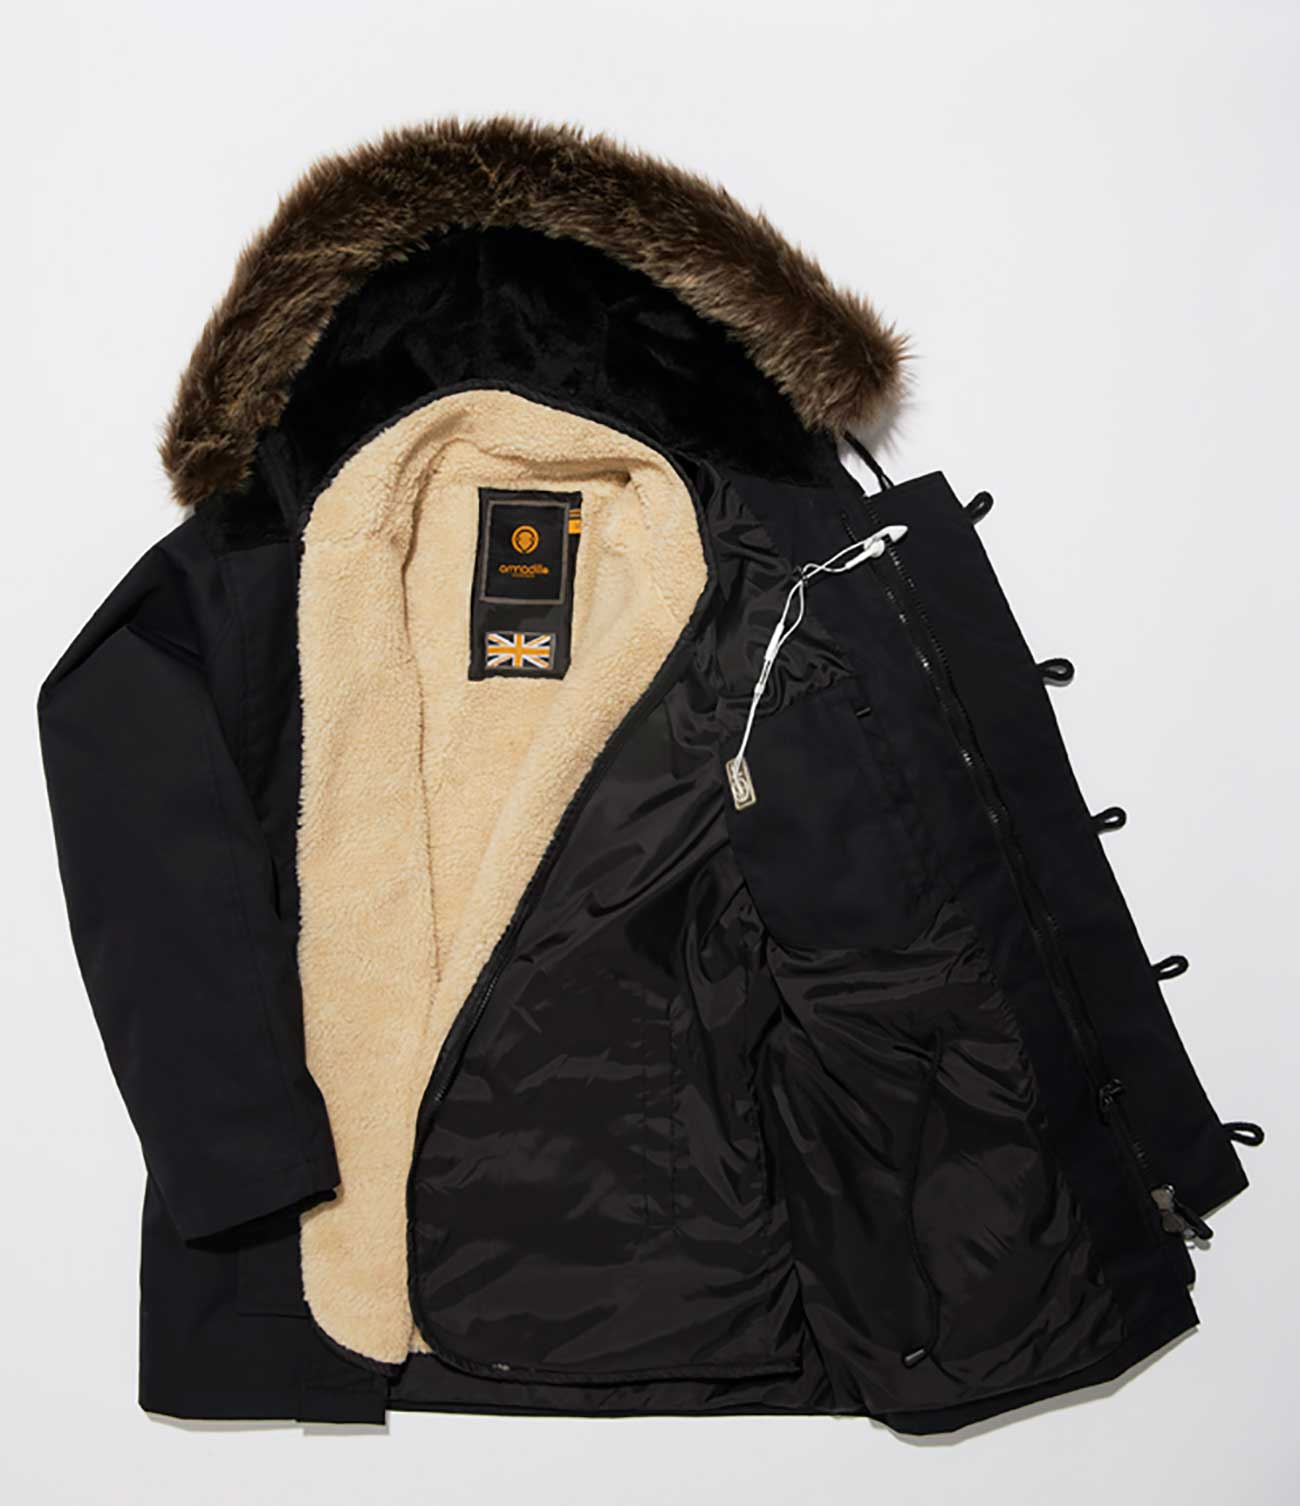 Jimmy Fur Parka Jacket - Black